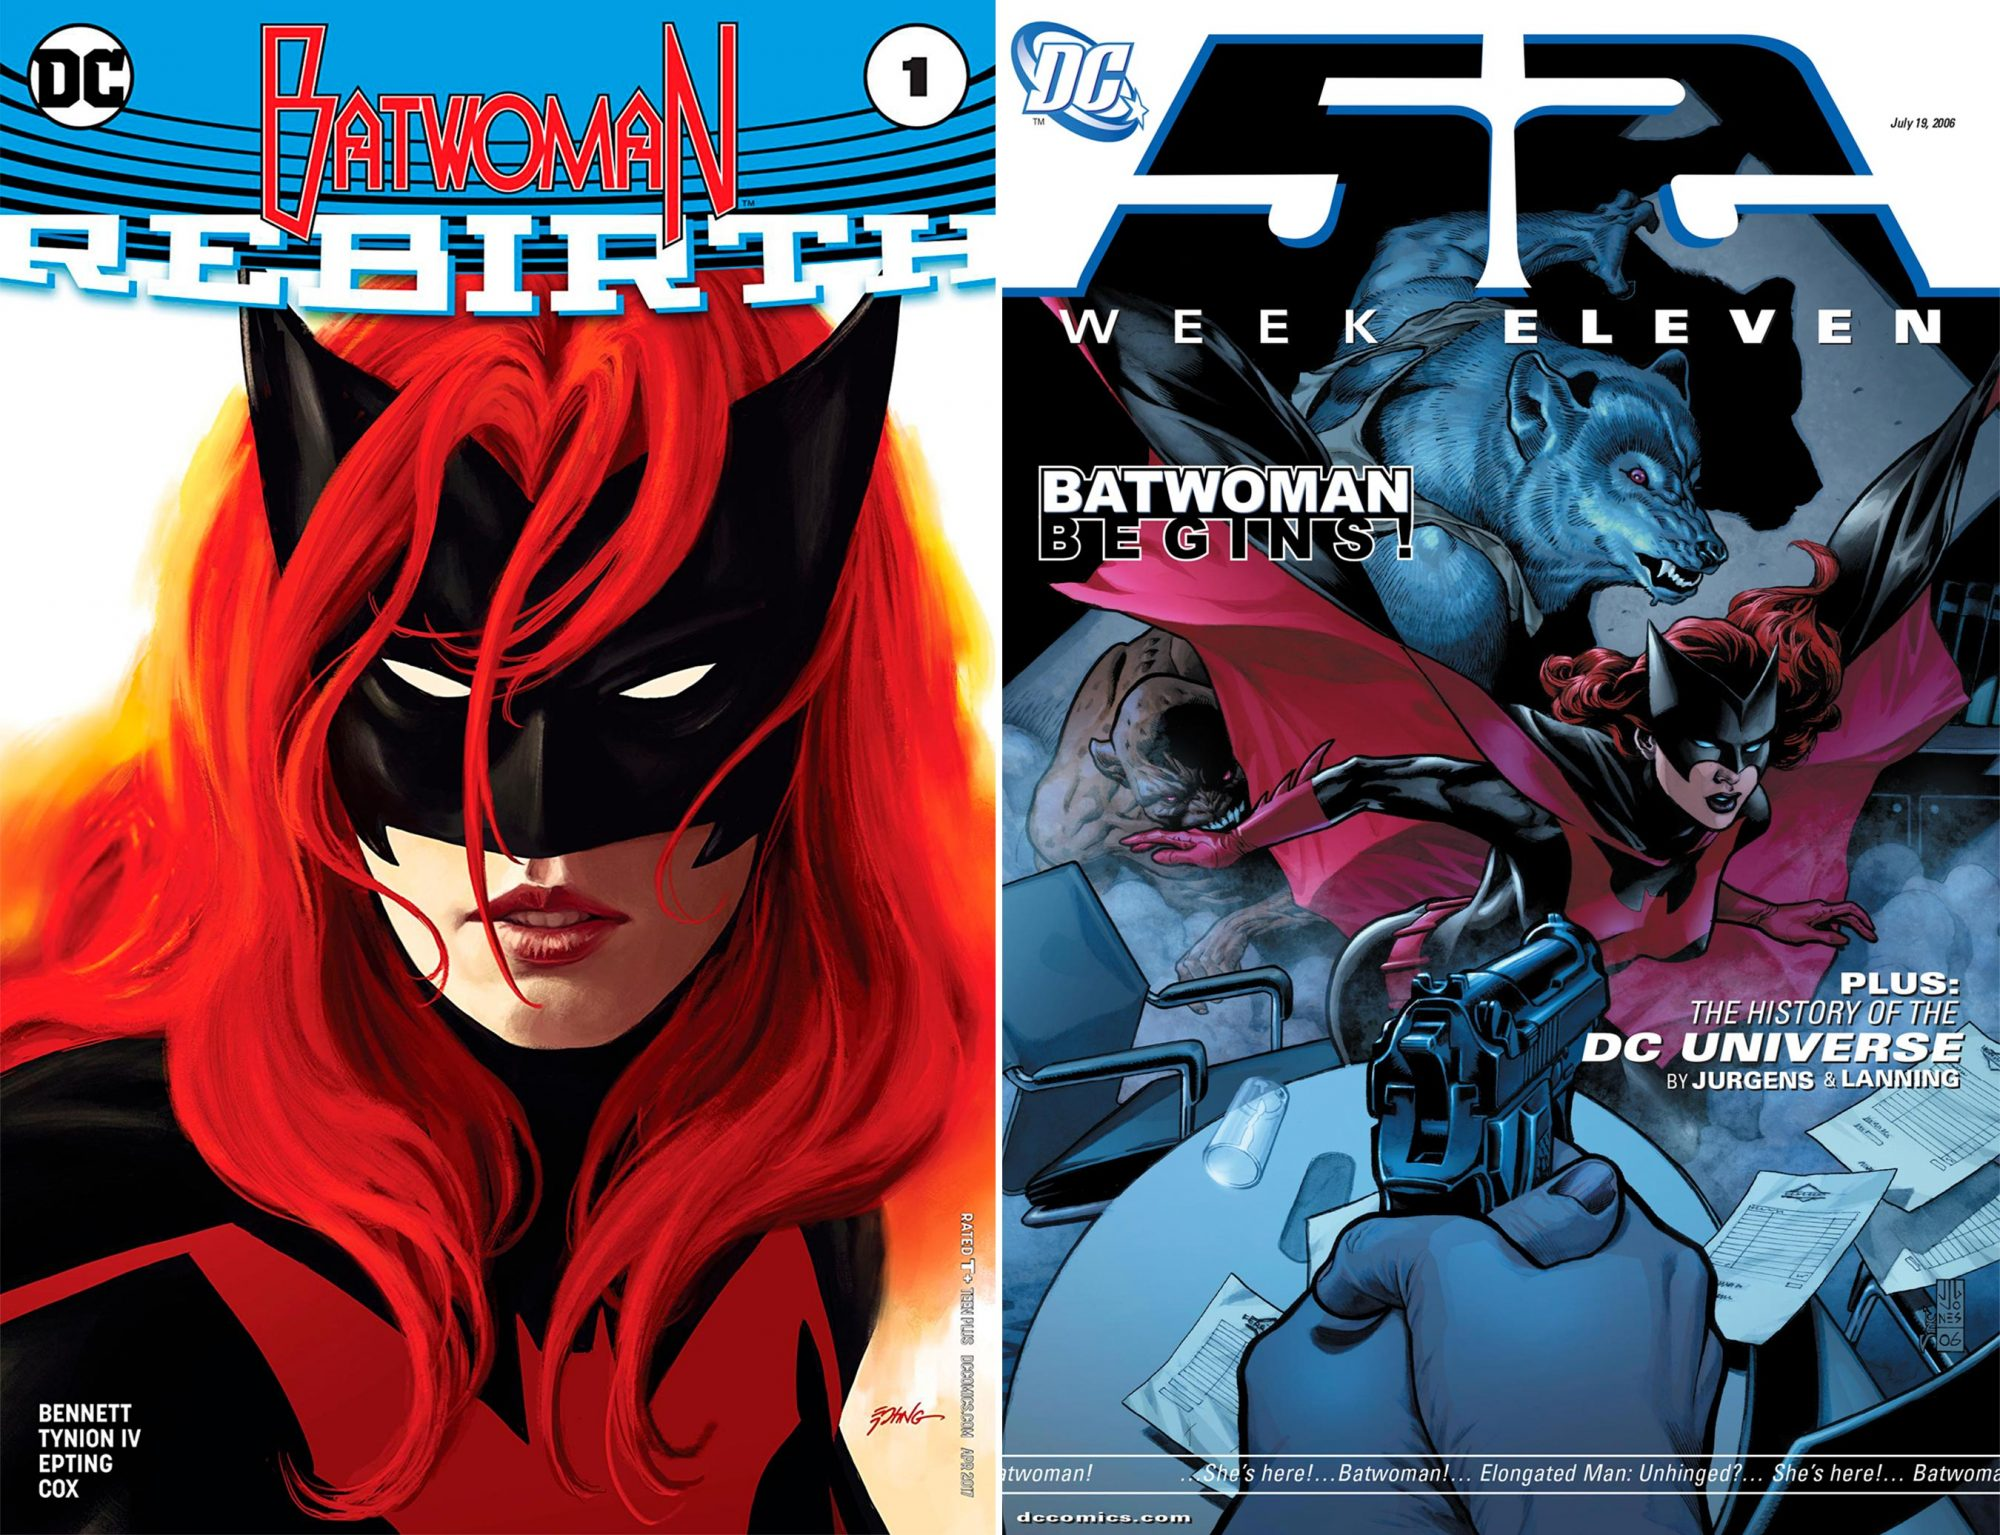 If you're excited about the Arrowverse 'Elseworlds' crossover...read 52 and Batwoman: The Many Arms of Death